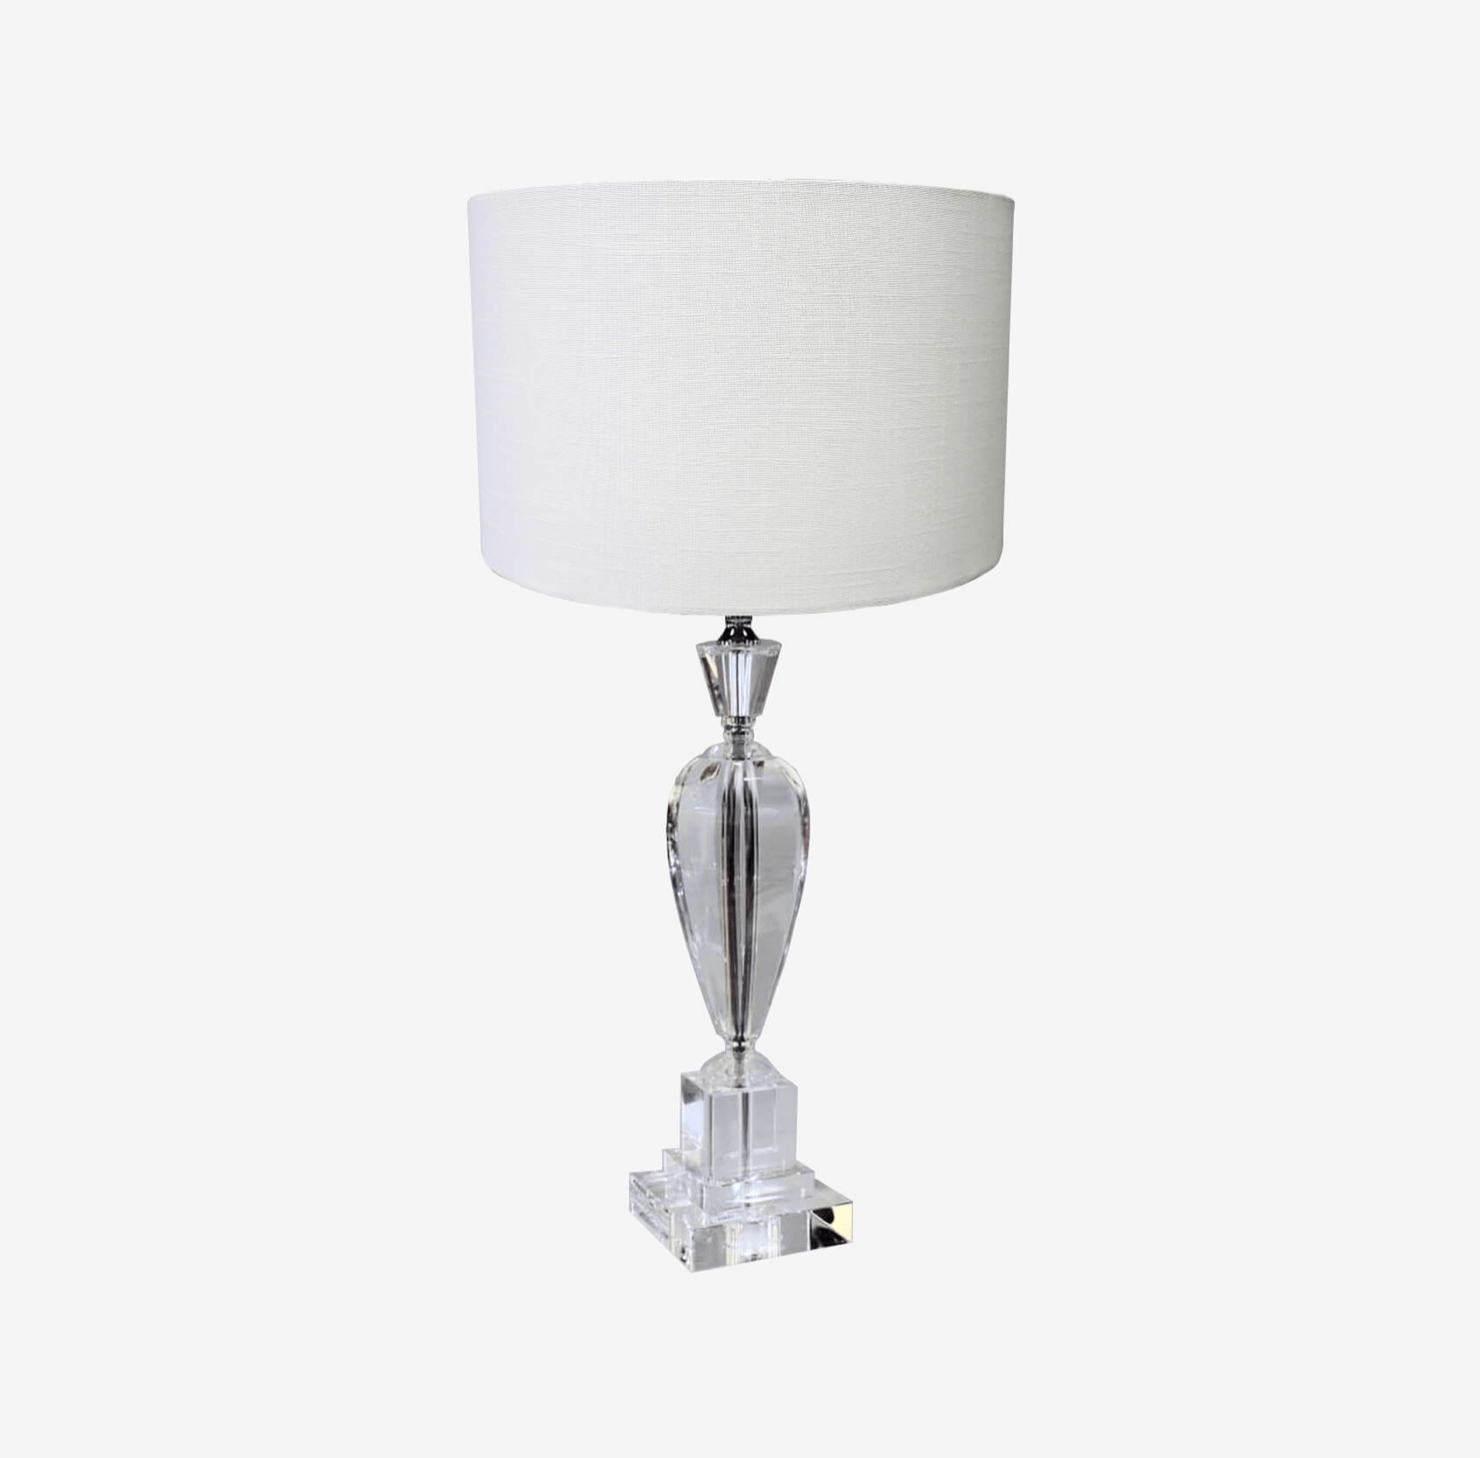 Table Lamps Chalice Table Lamp Base lighting shops lighting stores LED lights  lighting designer